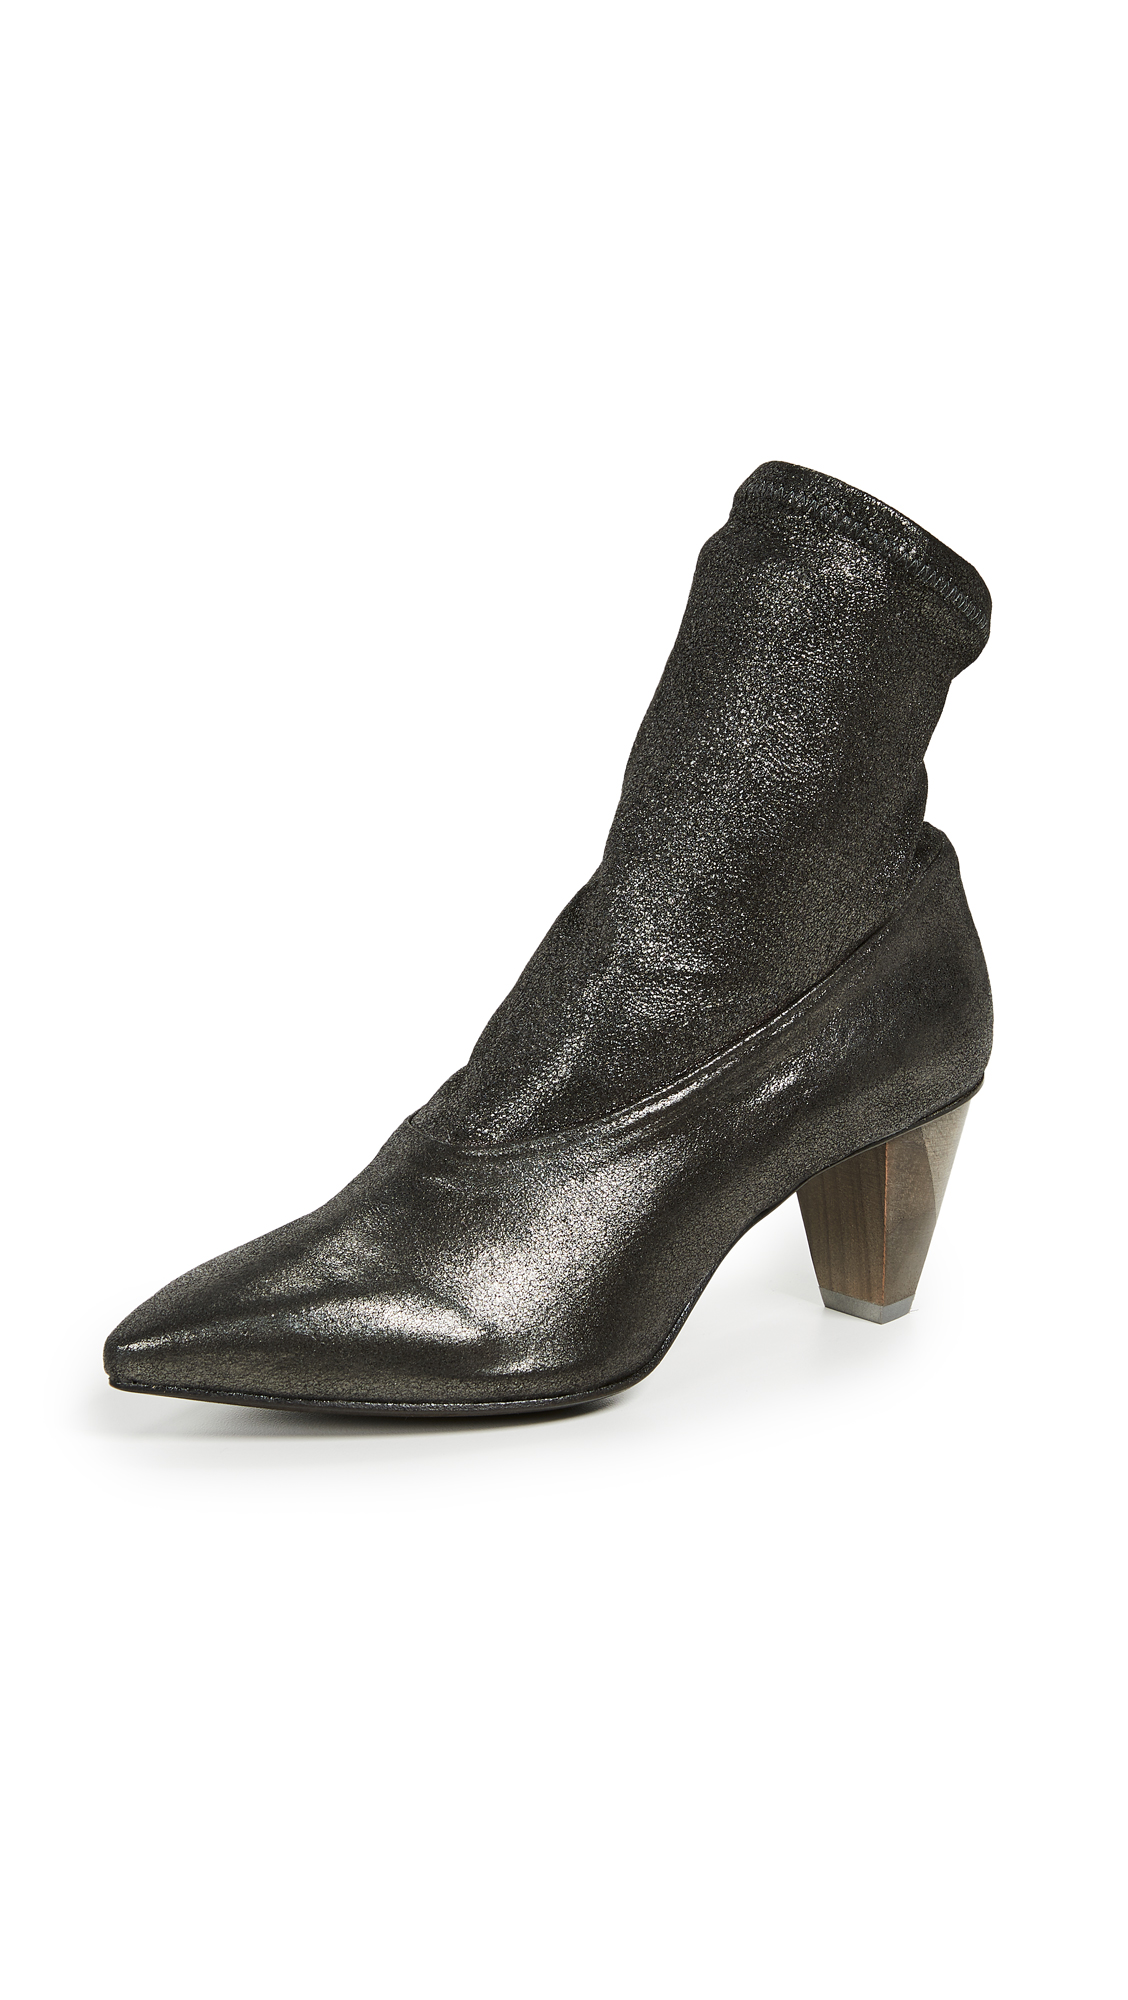 Coclico Shoes Juno Point Toe Booties - Anthracite